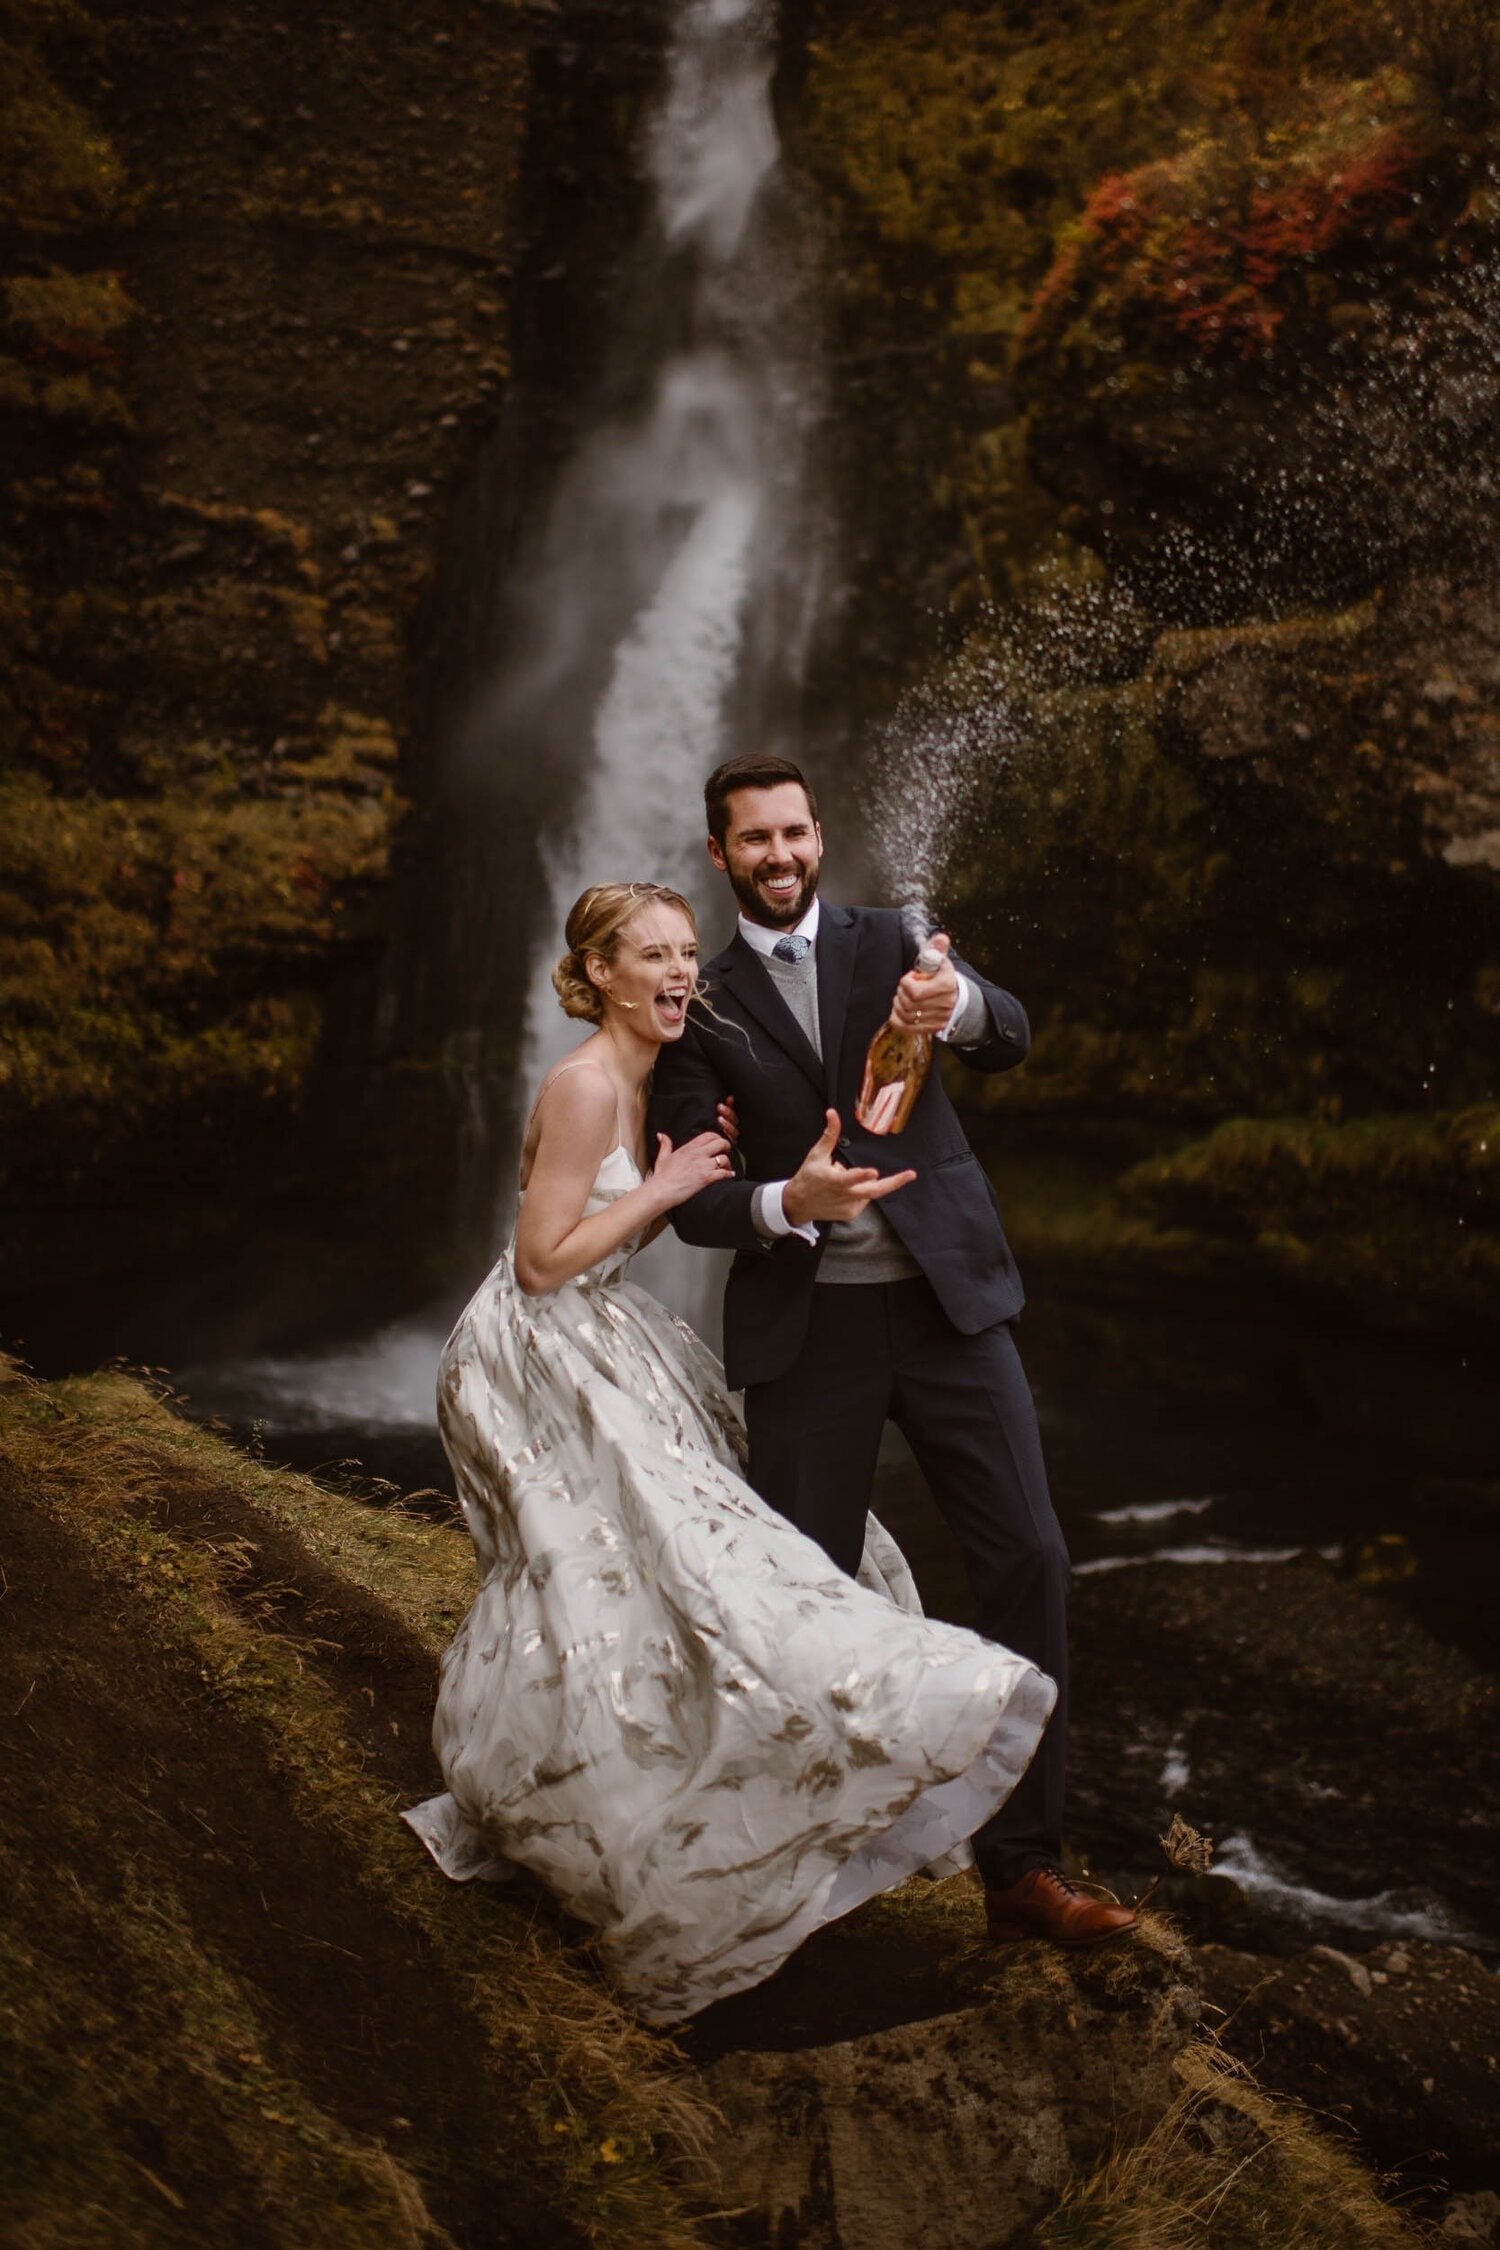 Bride and groom pop champagne on their wedding day in front of a waterfall.